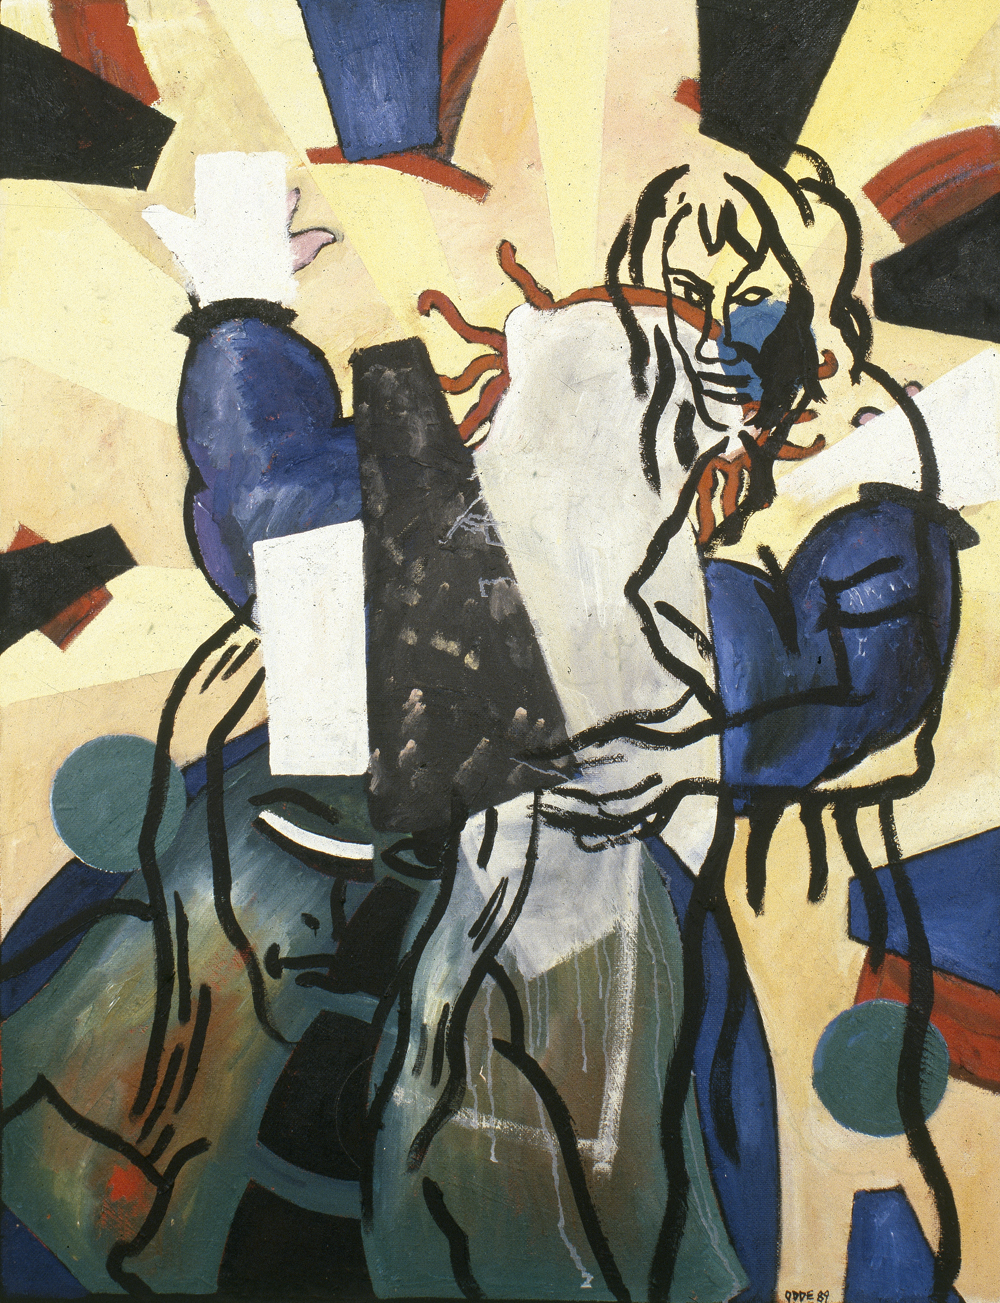 Canvas_(Title unknown) (after Pettibon)_Oil on masonite_Oil on canvas_1990